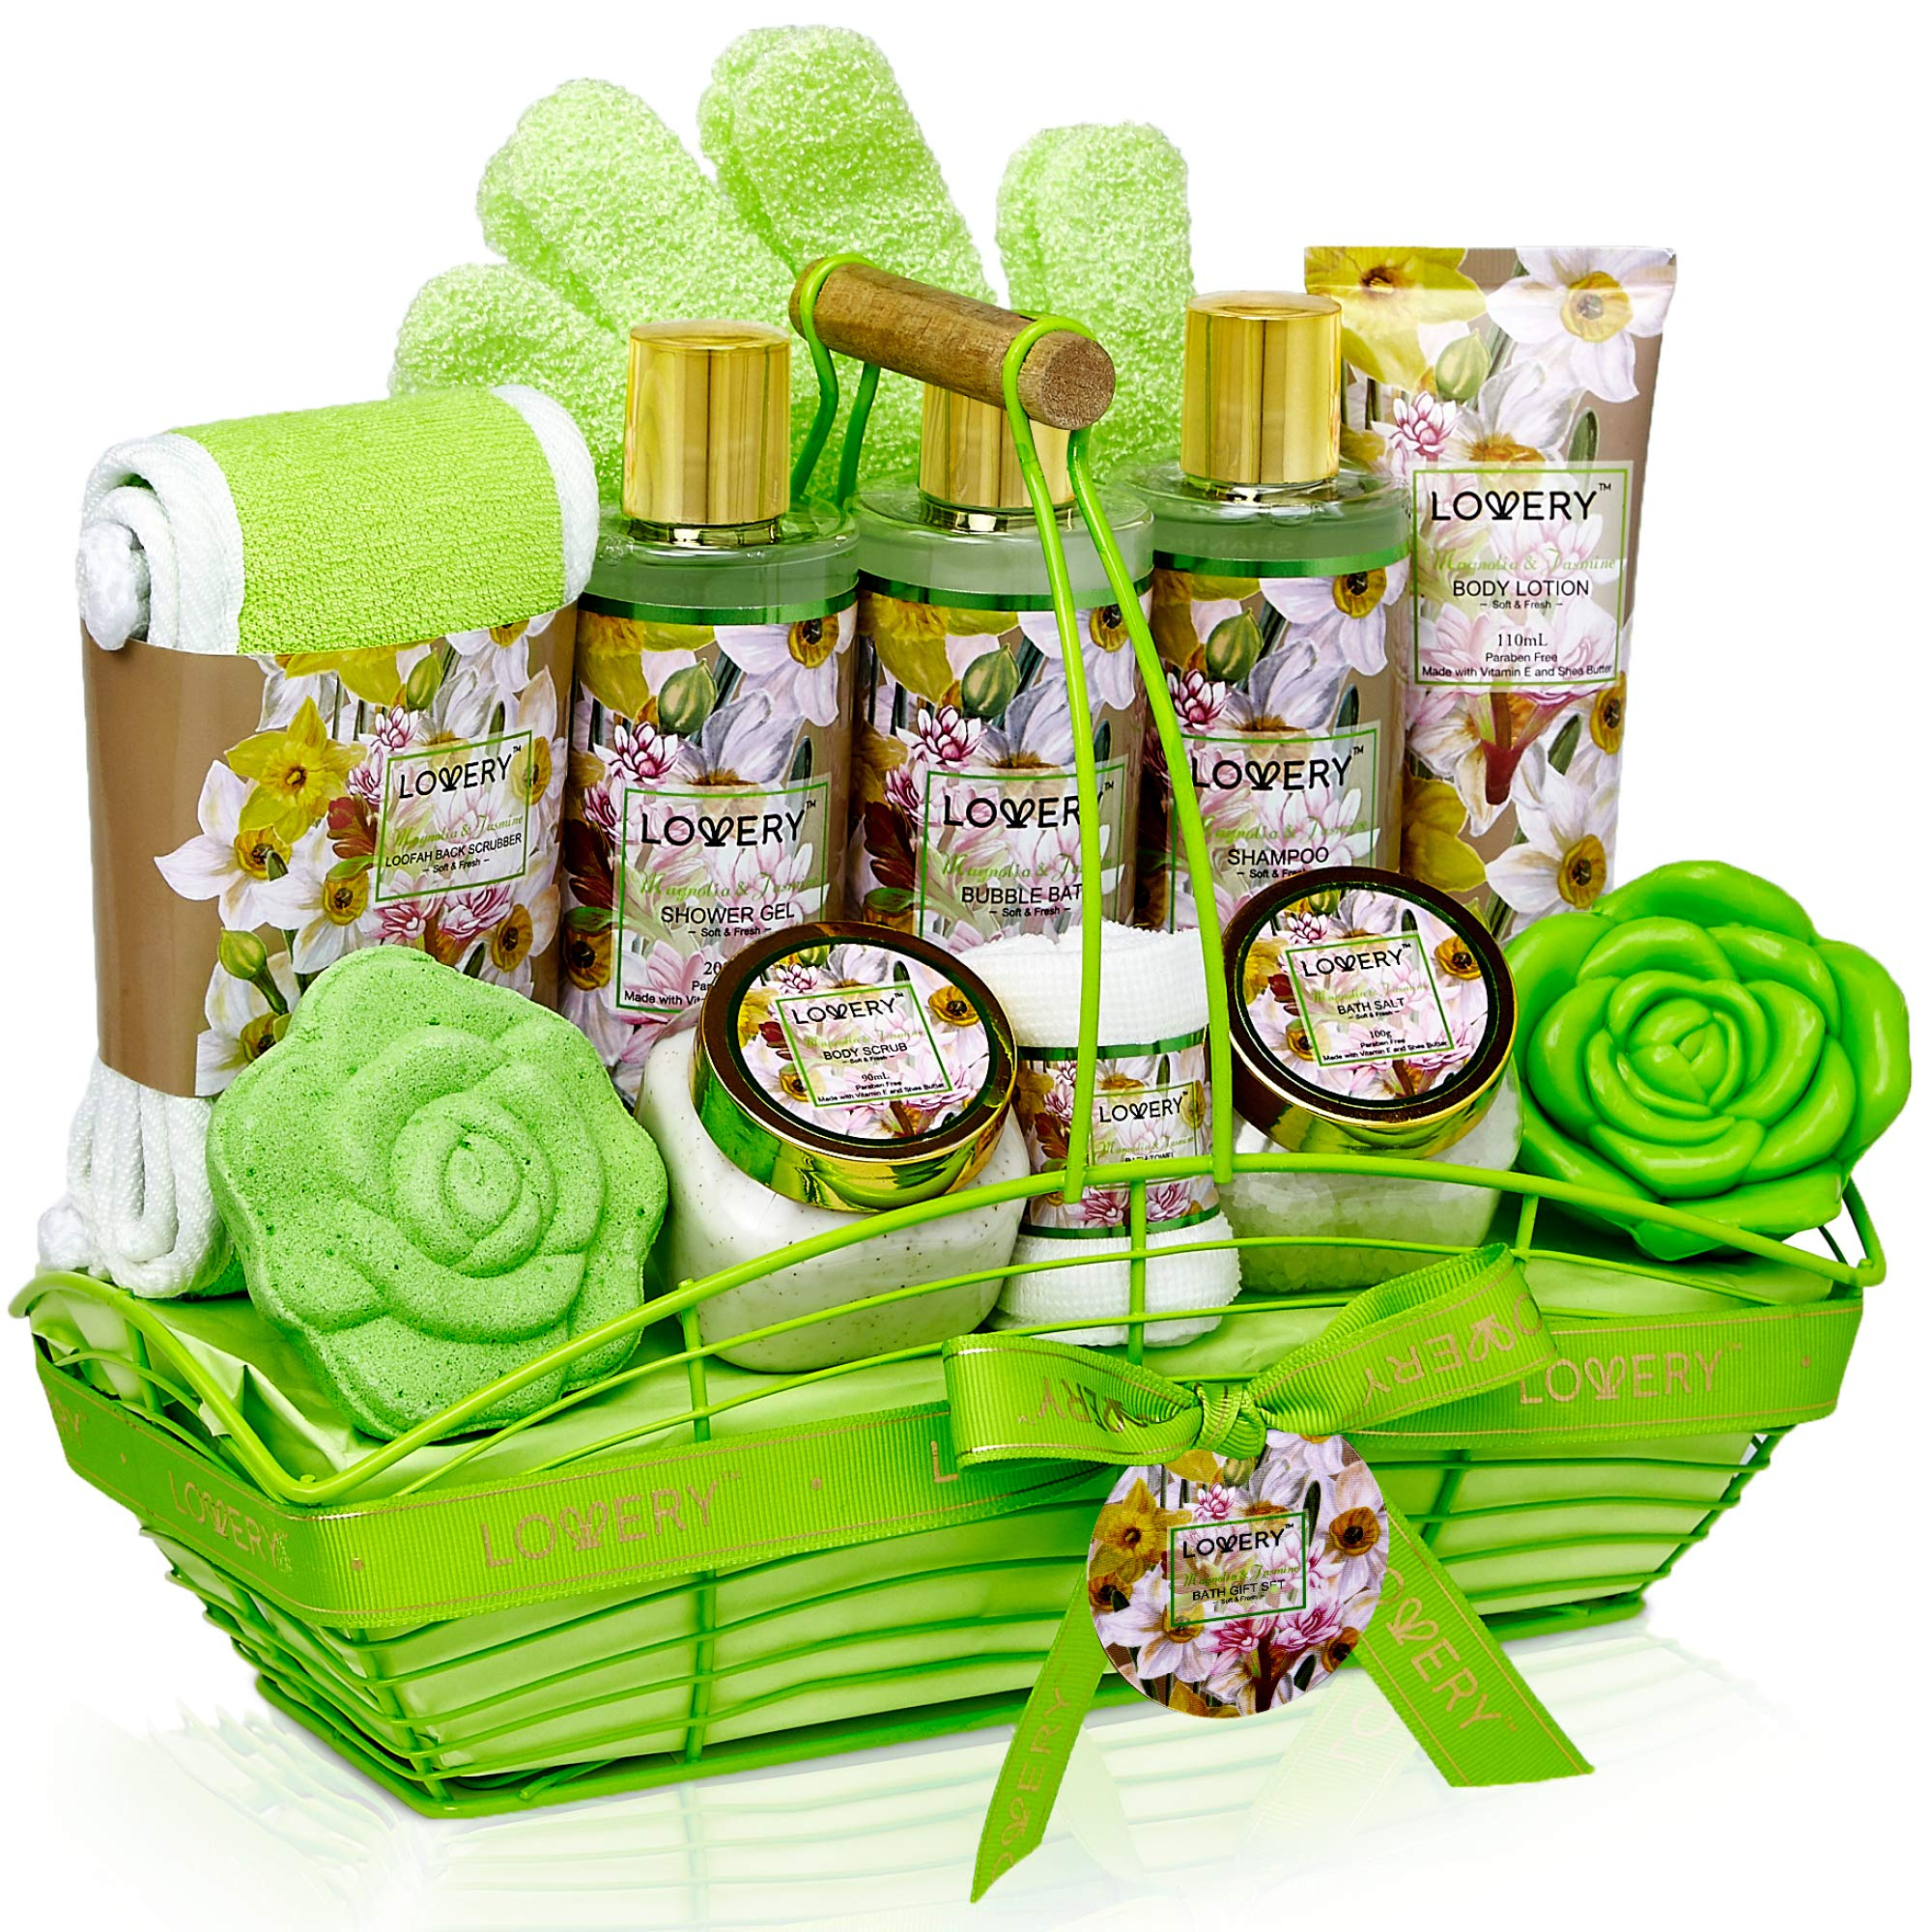 Bath and Body Gift Basket For Women & Men - Magnolia and Jasmine Home Spa Set, Includes Fragrant Lotions, Bath Bomb, Towel, Shower Gloves, Green Wired Bread Basket and More - 13 Piece Set